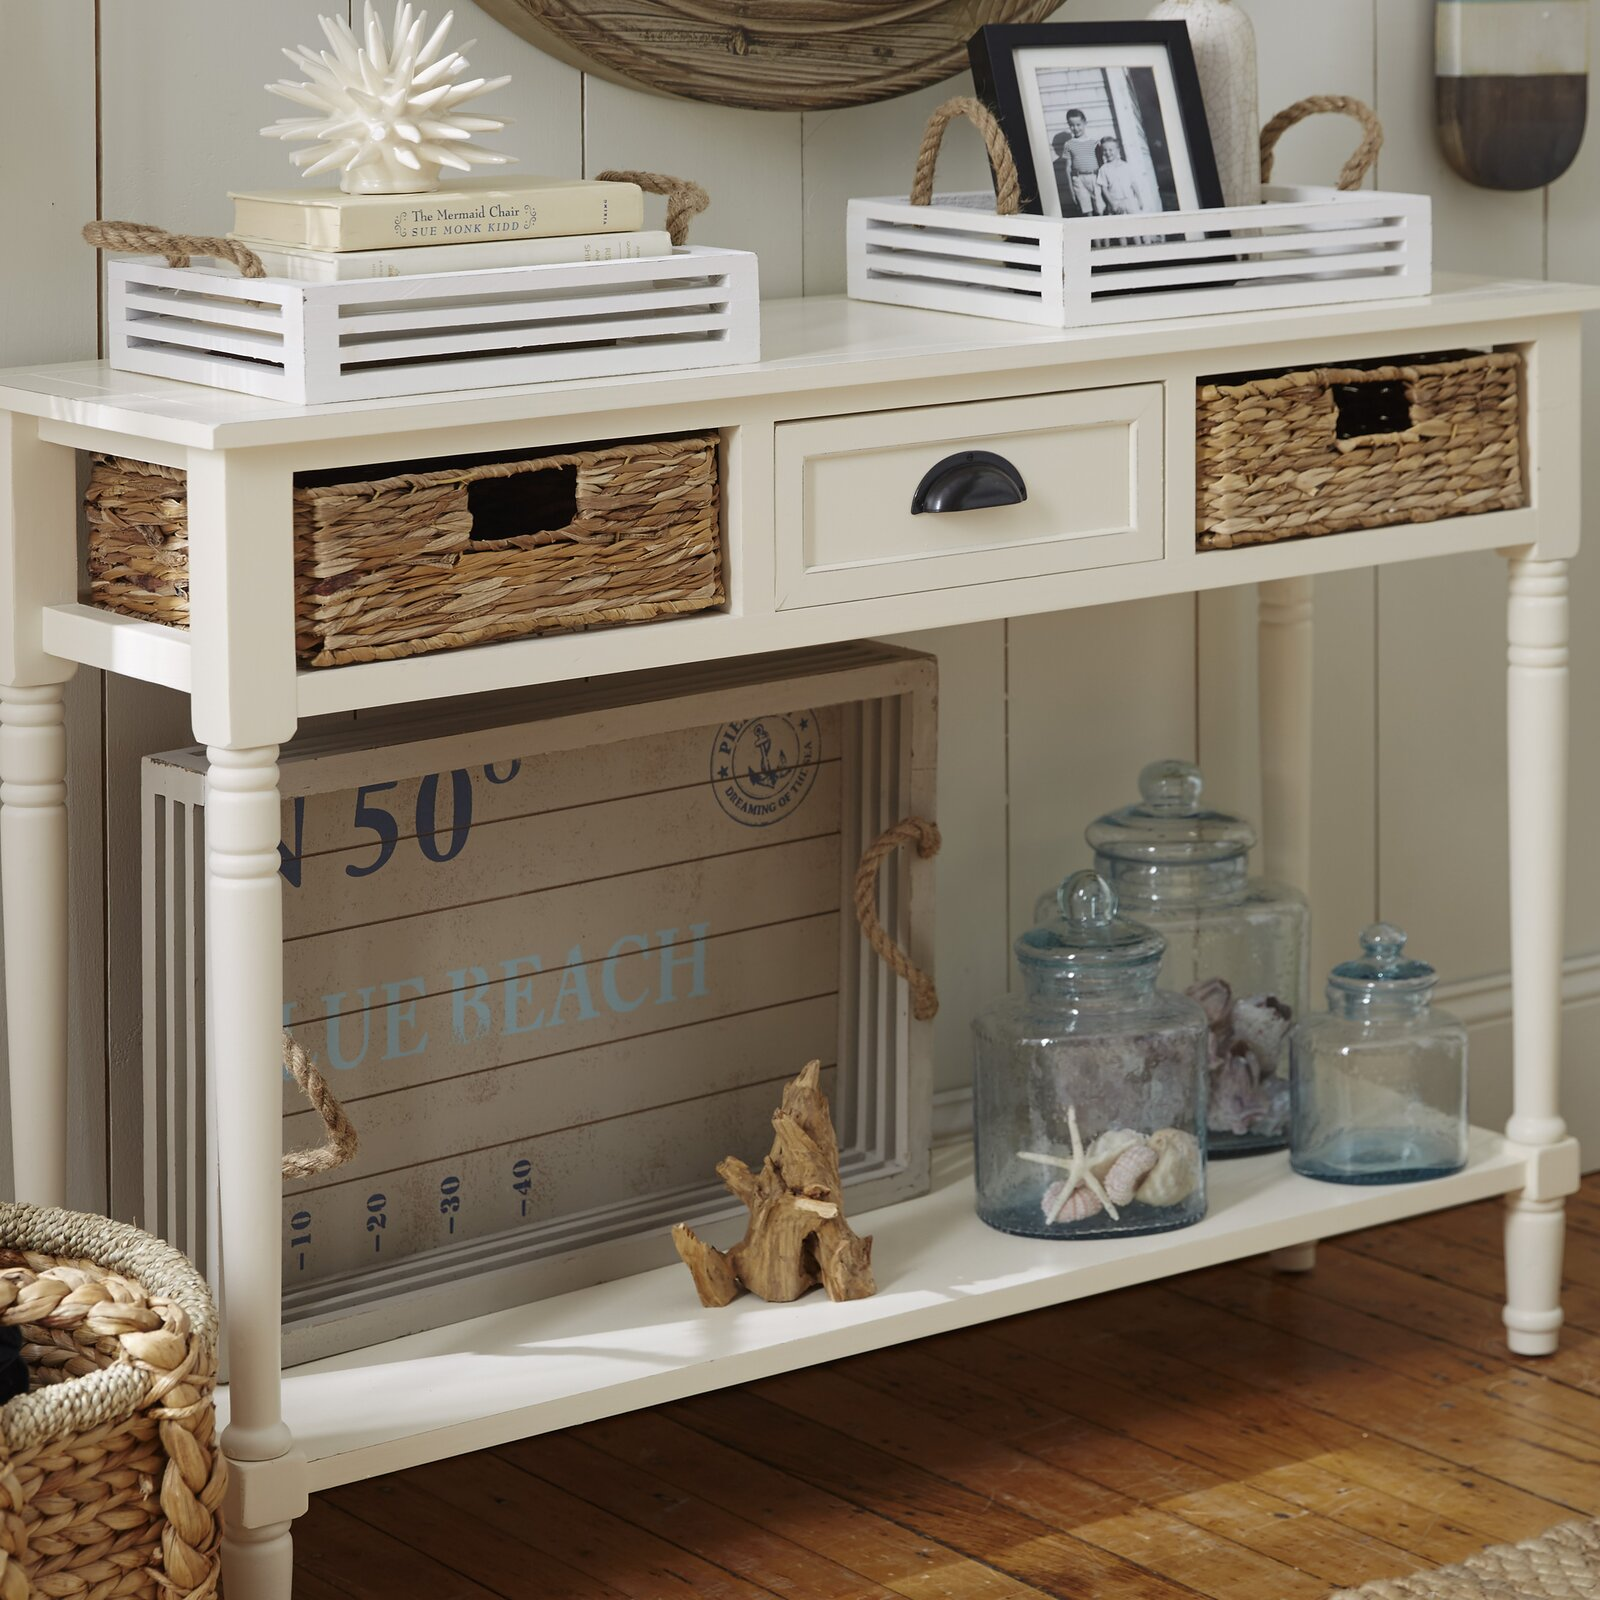 White Wood and Wicker for a Nautical Theme